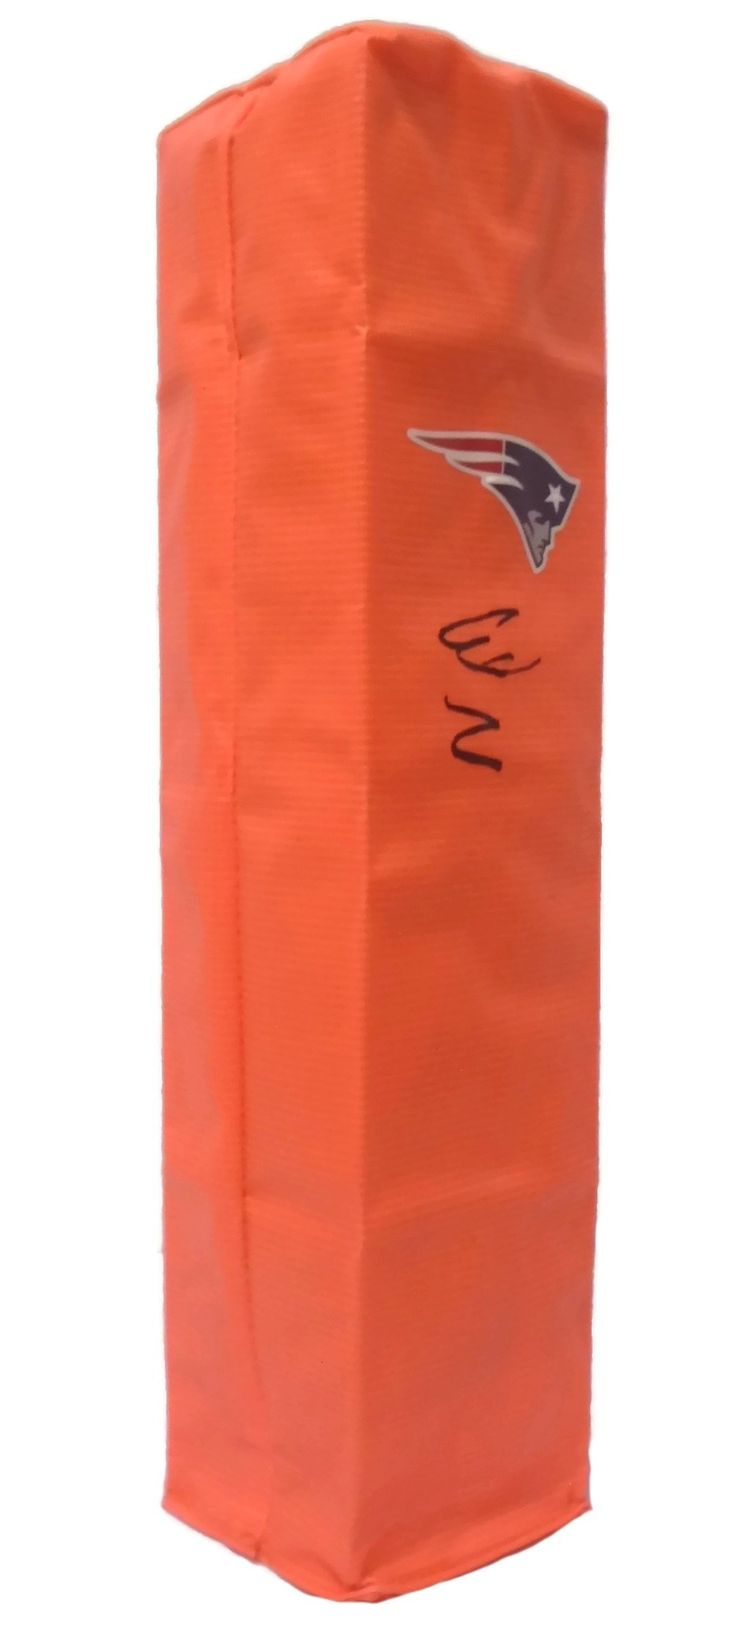 Wes Welker Autographed New England Patriots F/S Football End Zone Touchdown Pylon,Proof